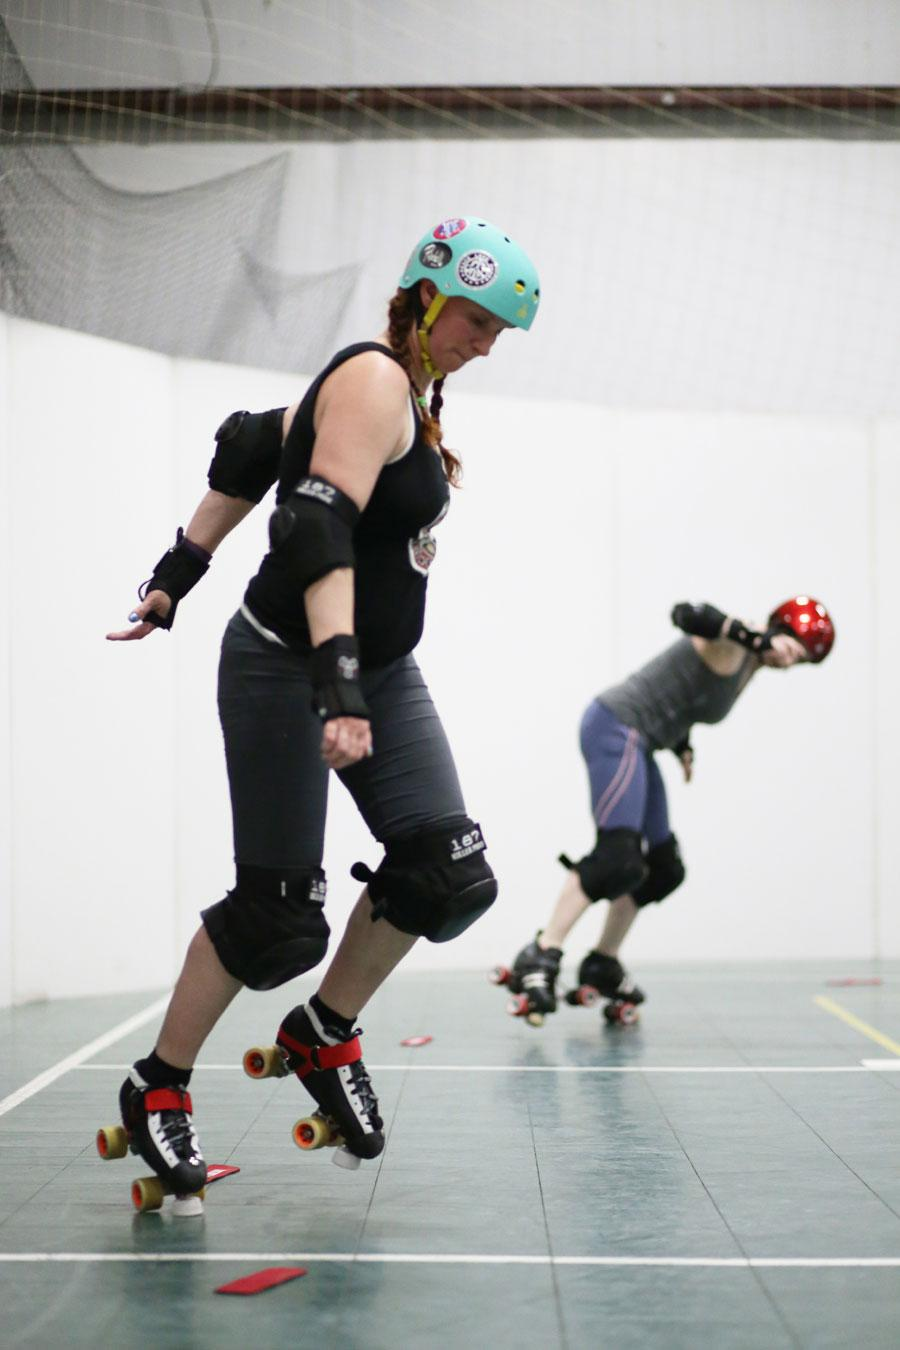 USI alumnae Jolie DeVries and Cassie Kahn work on drills during practice for the Demolition City Roller Derby League Tuesday at the Metro Sports Center in Evansville.